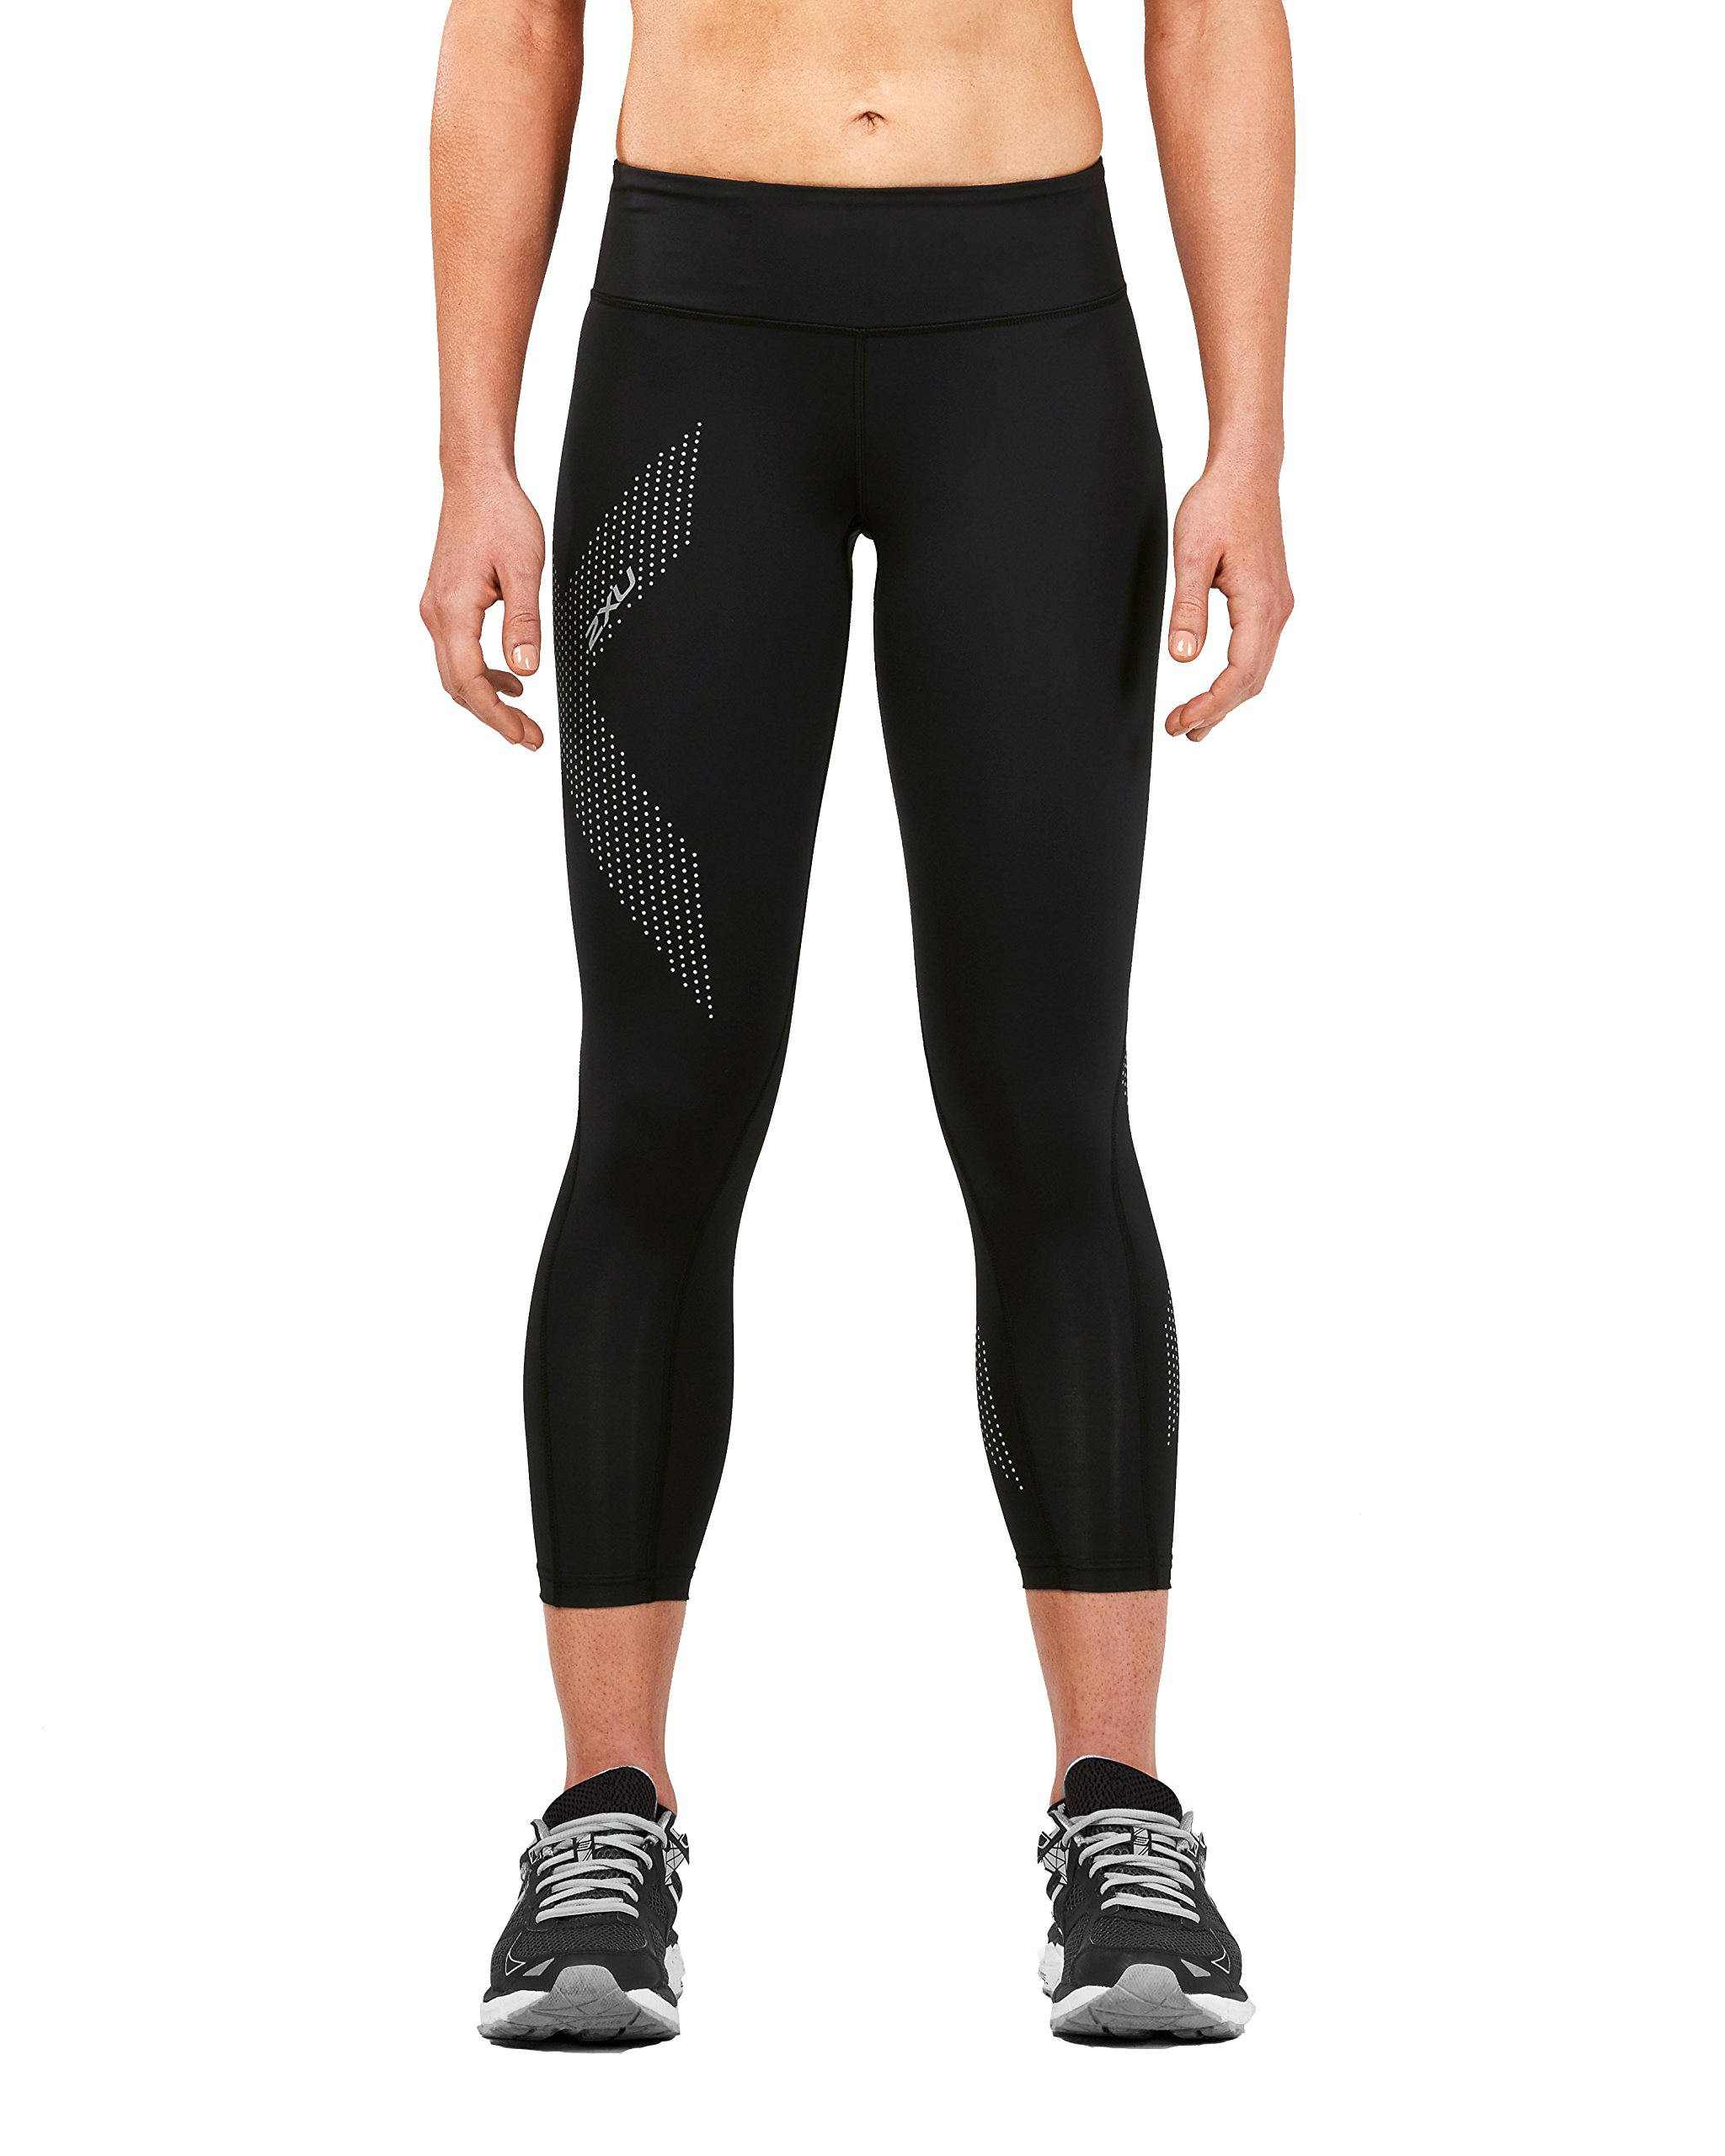 2XU Women's Mid-Rise Compression 7/8 Tights (Black/Dotted Reflective Logo, Small) by 2XU (Image #2)